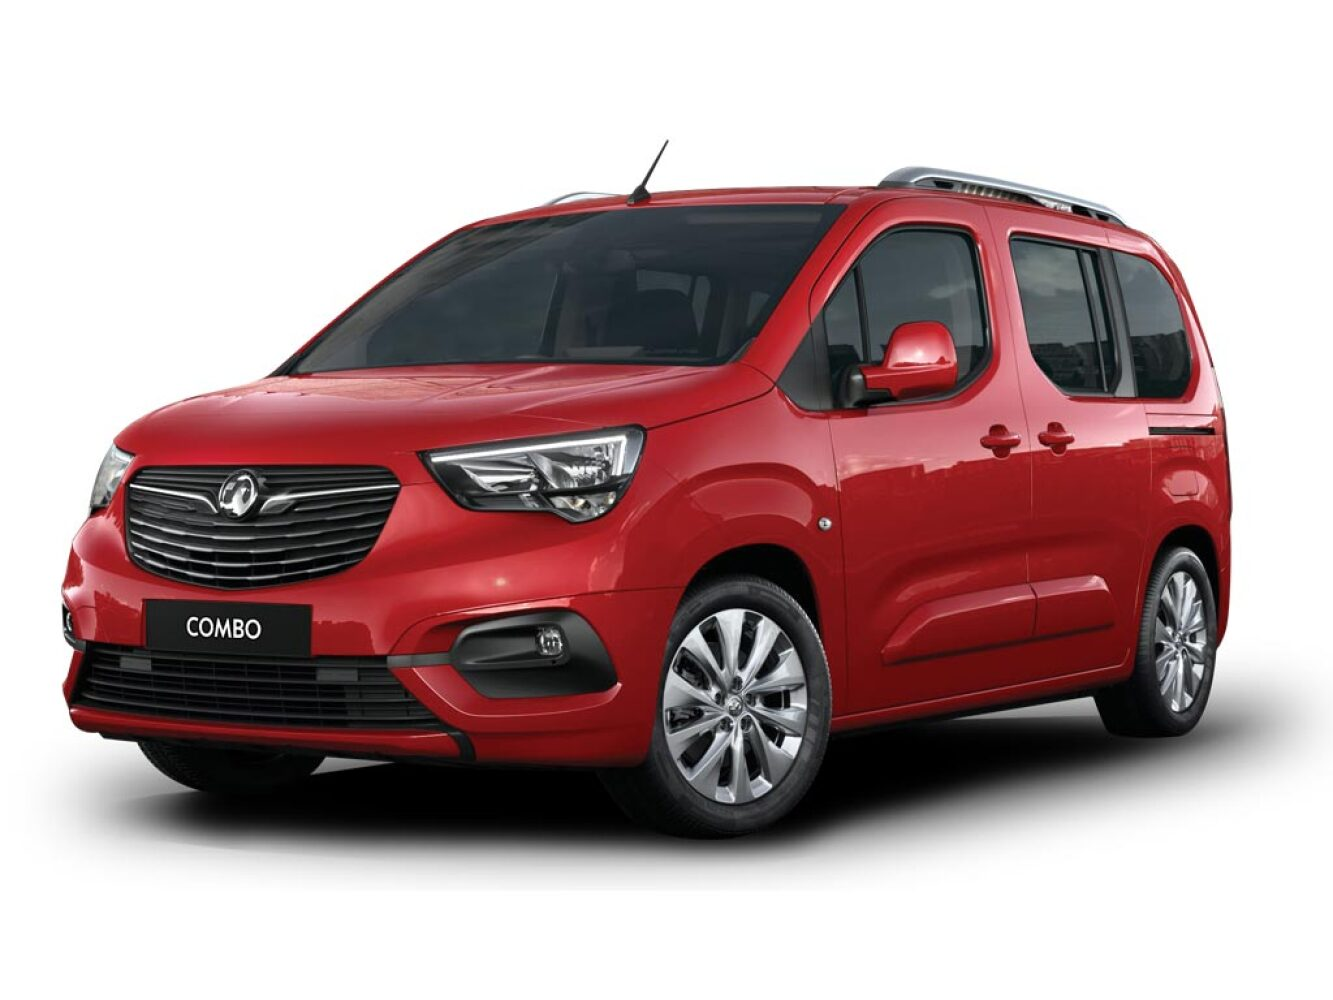 New Vauxhall Combo Life 1 5 Turbo D Design Xl 5dr Diesel Estate For